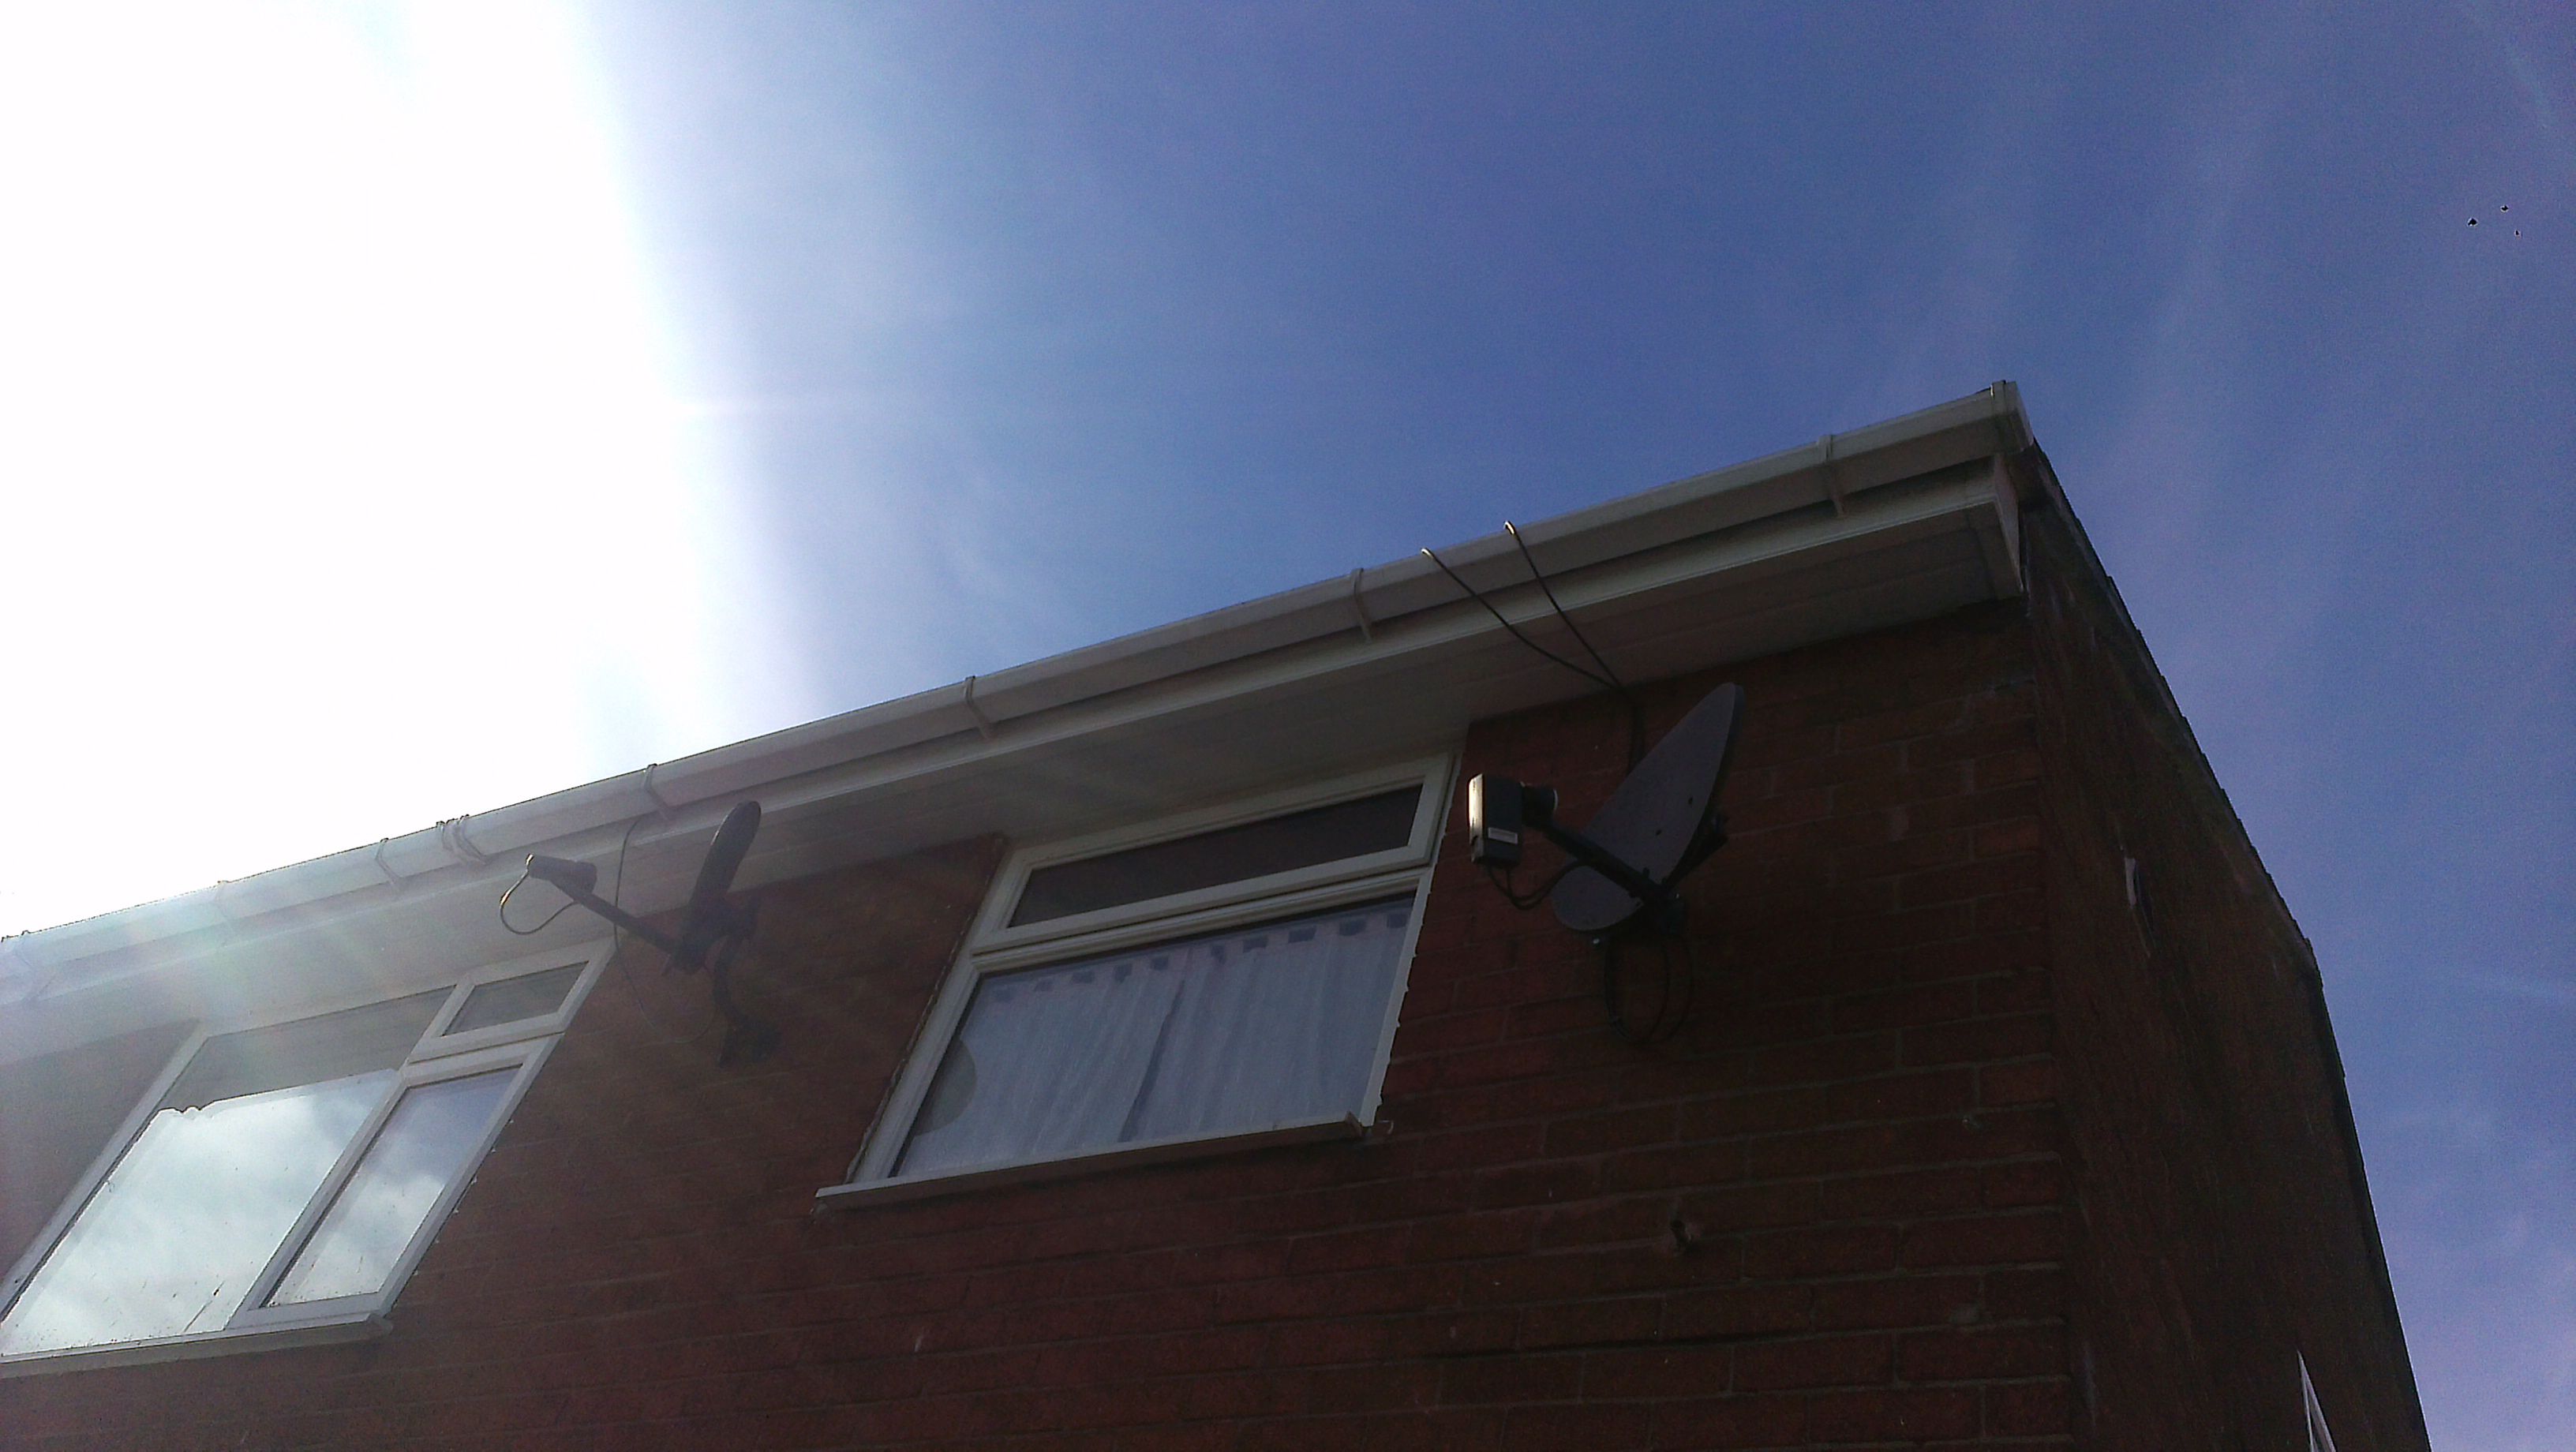 Gutter cleaning Manchester - After